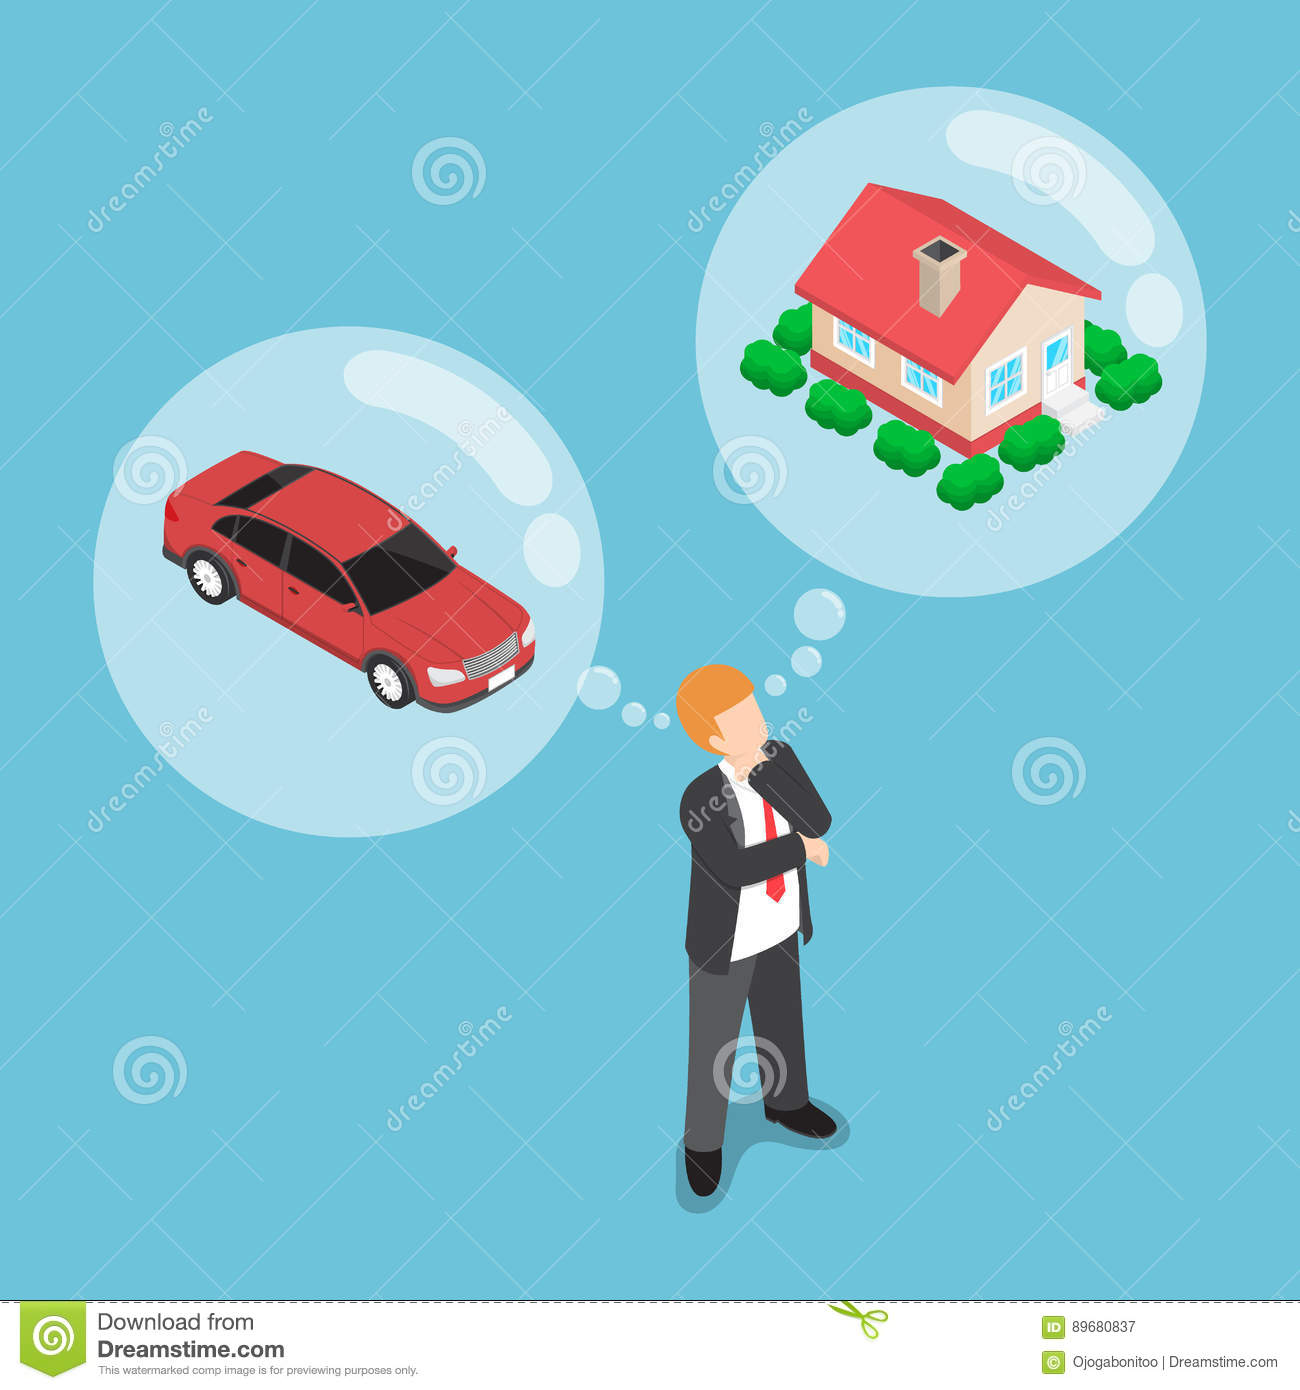 Isometric businessman dreaming about house and car